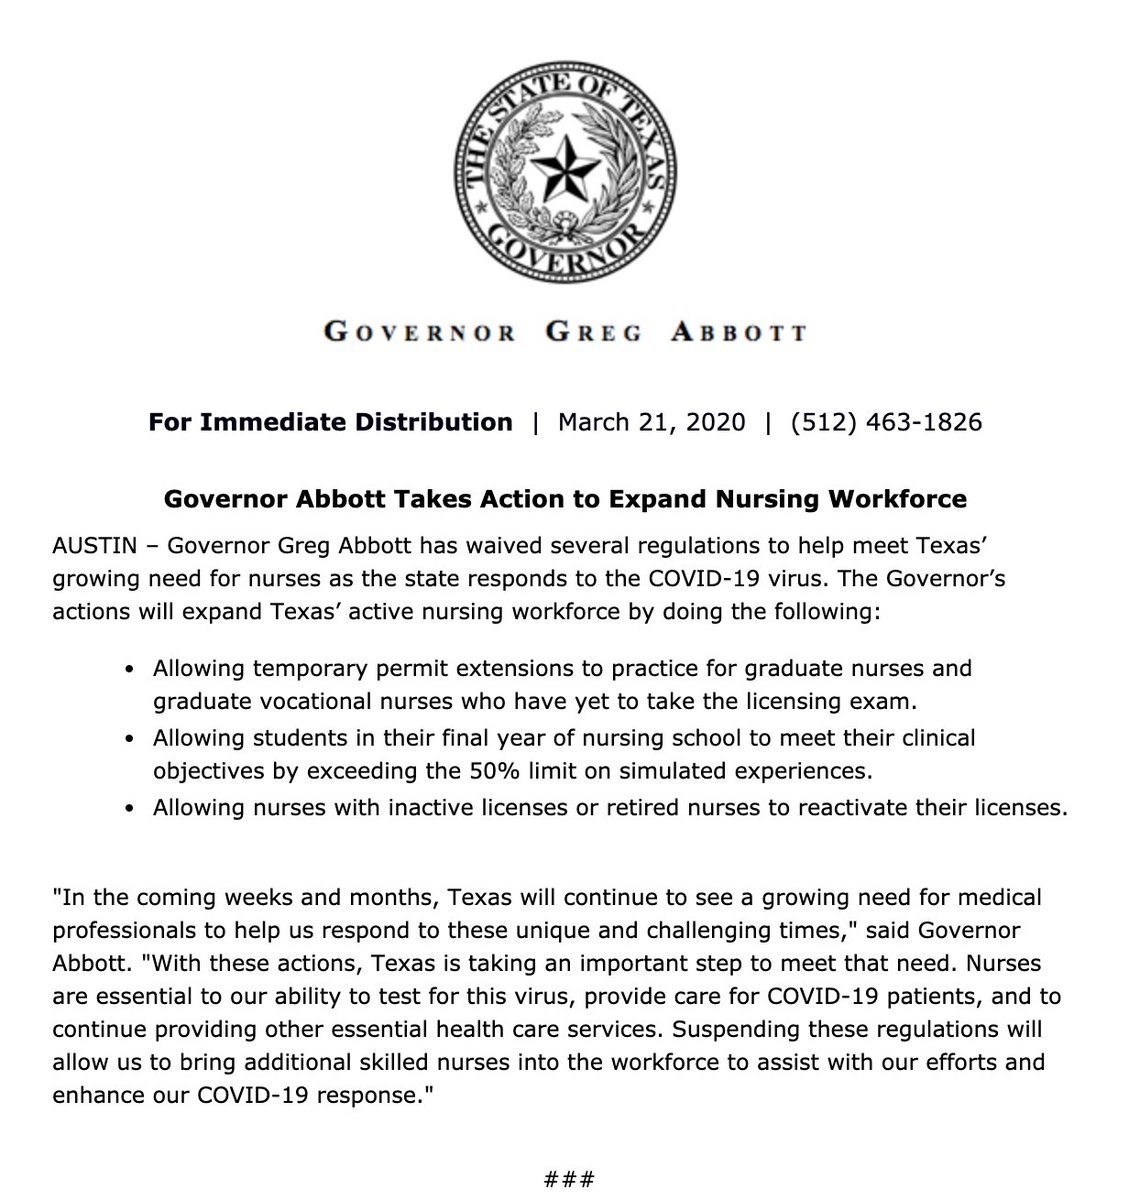 Taking action to expand the nursing workforce in Texas. bit.ly/39aJpRN